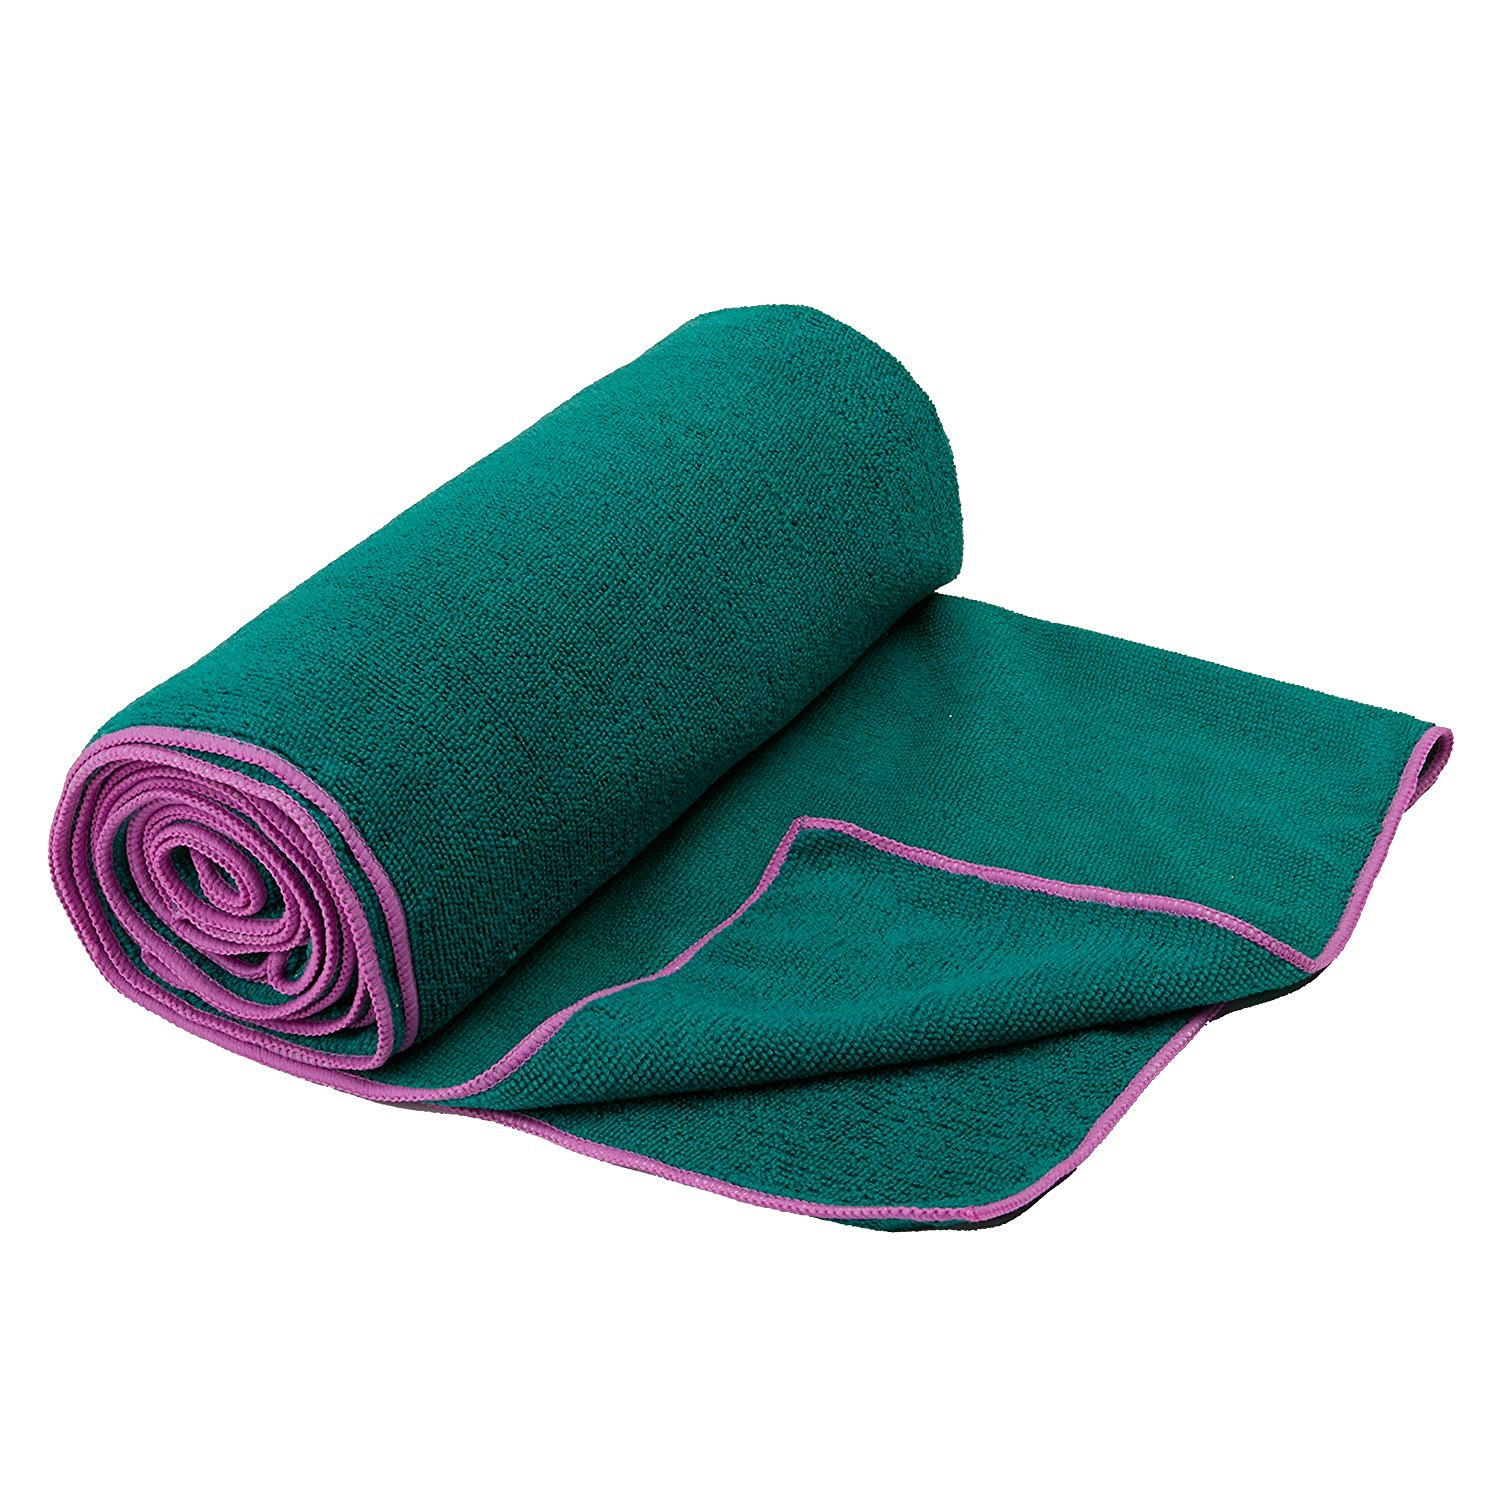 gaiam thirsty yoga towel orchid/turquoise sea